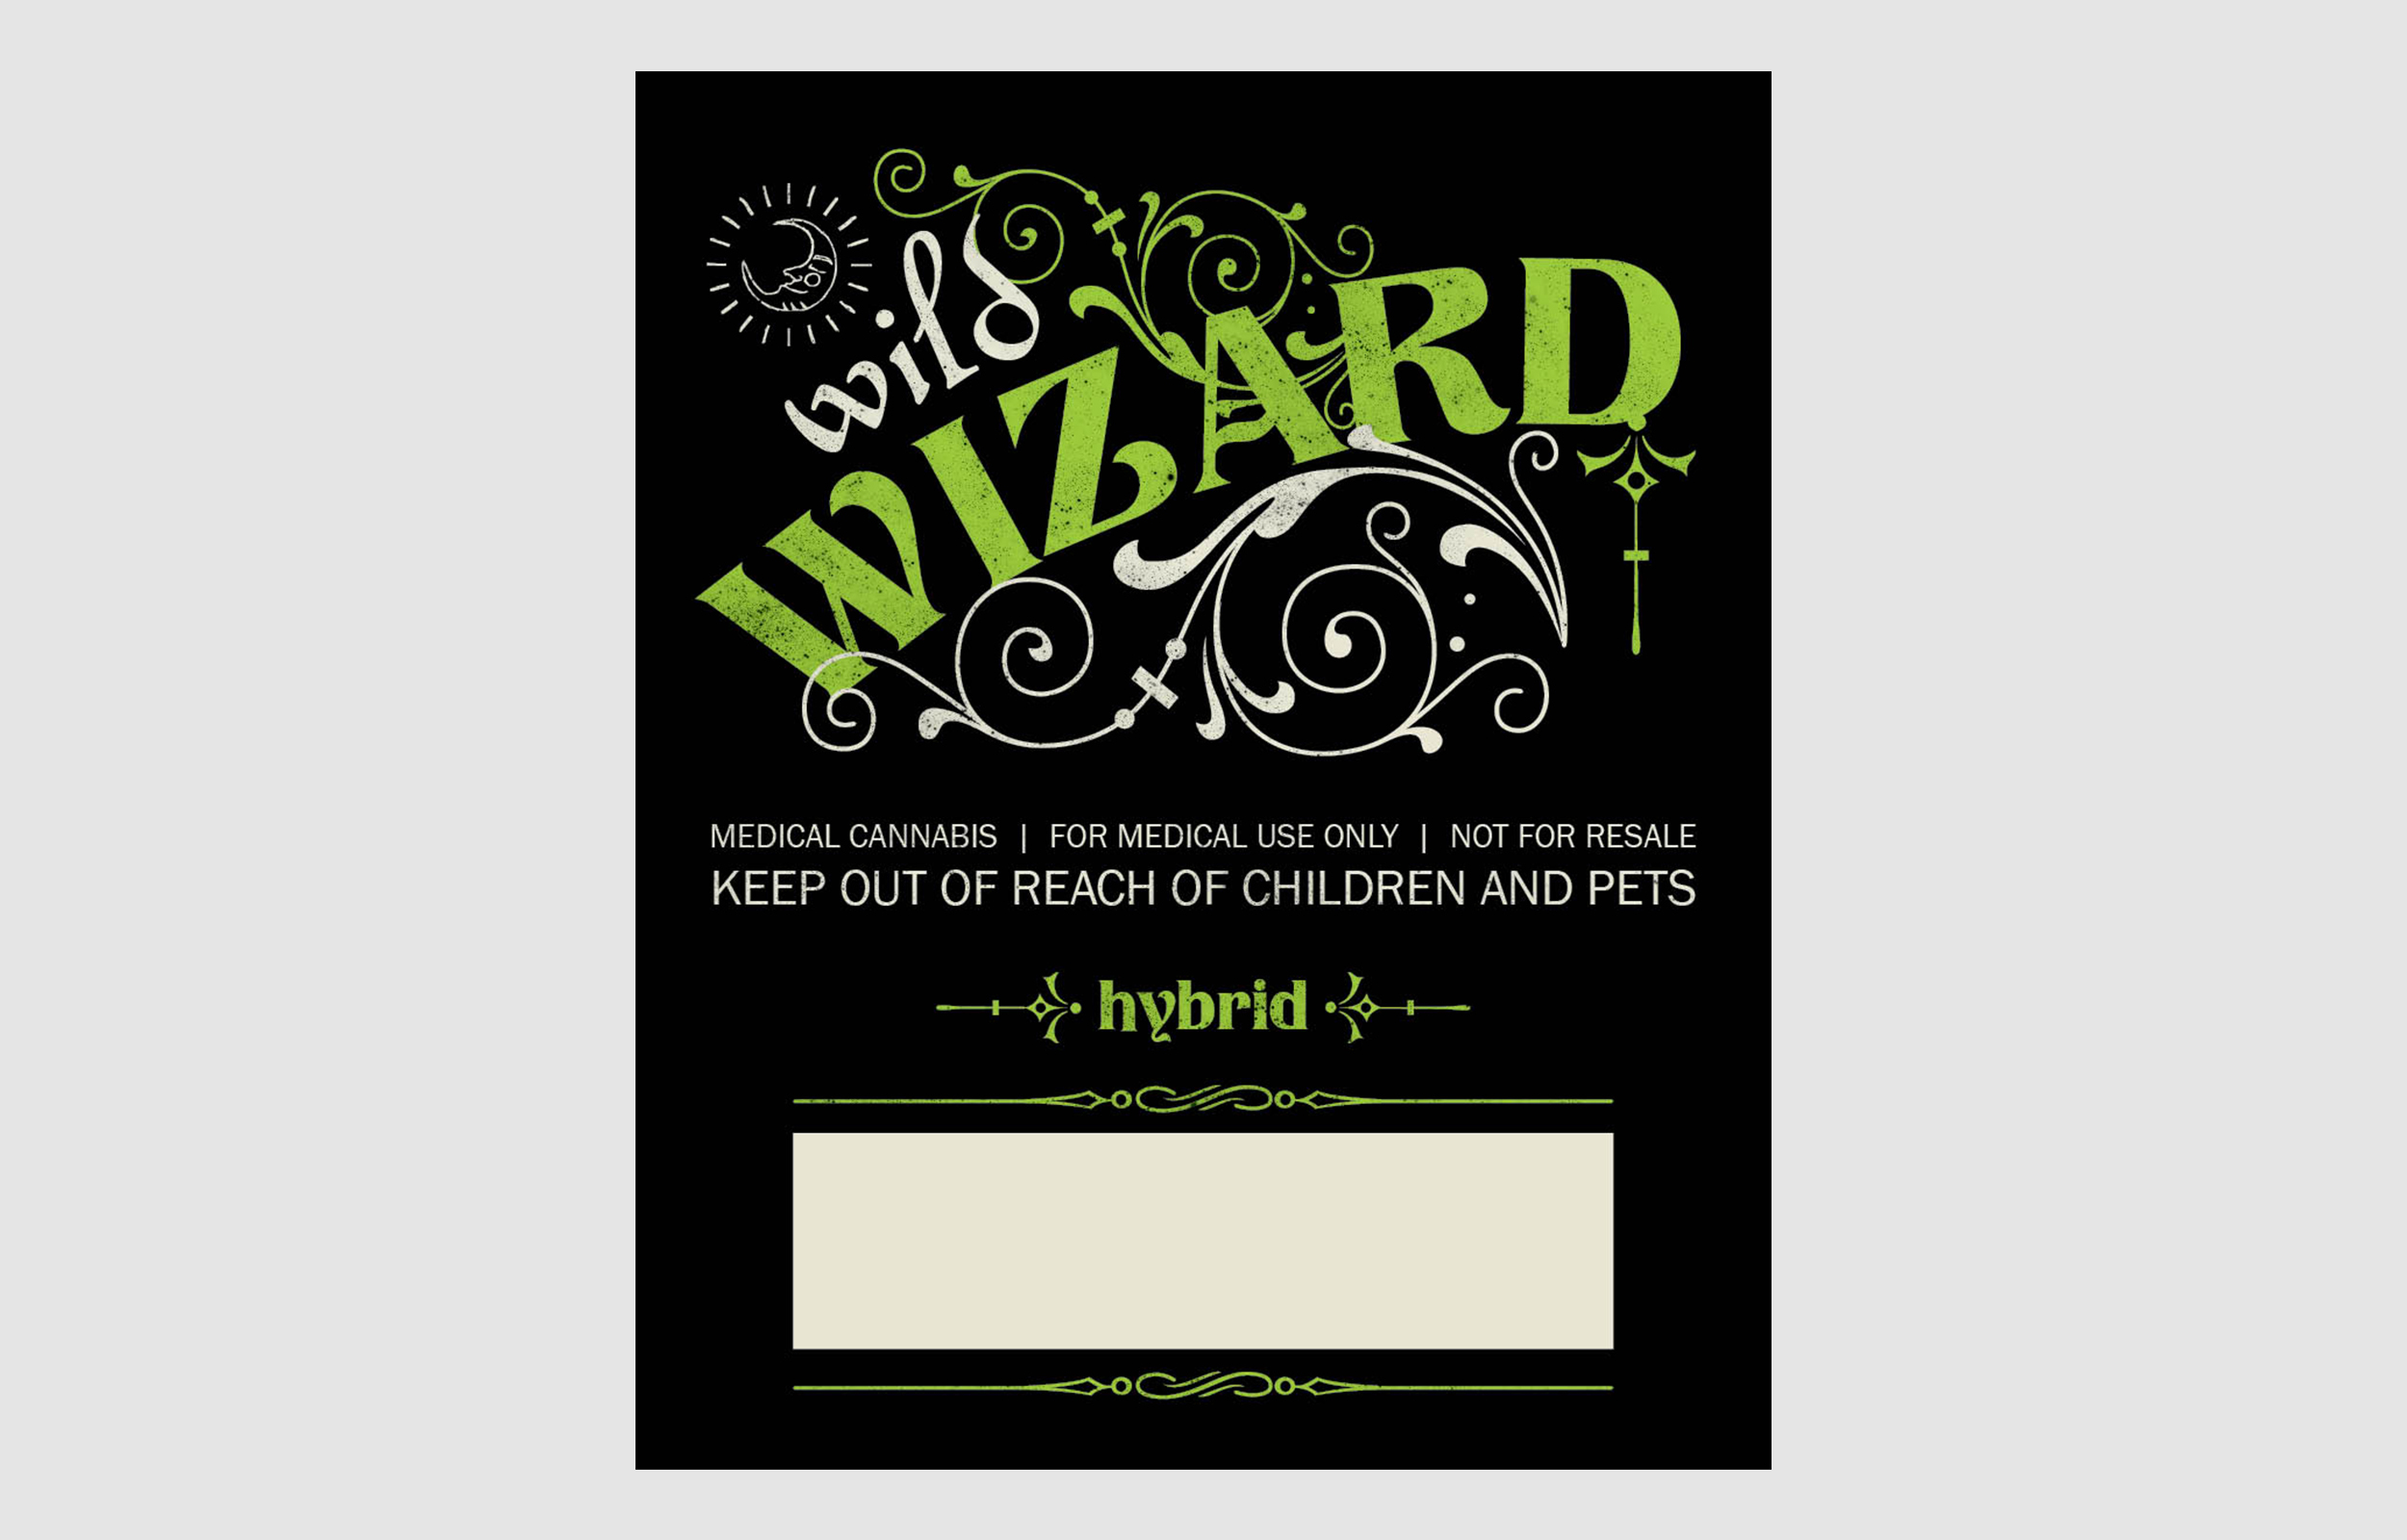 Wild Wizard \u2014 Amanda Weedmark  Retro Design  Illustration